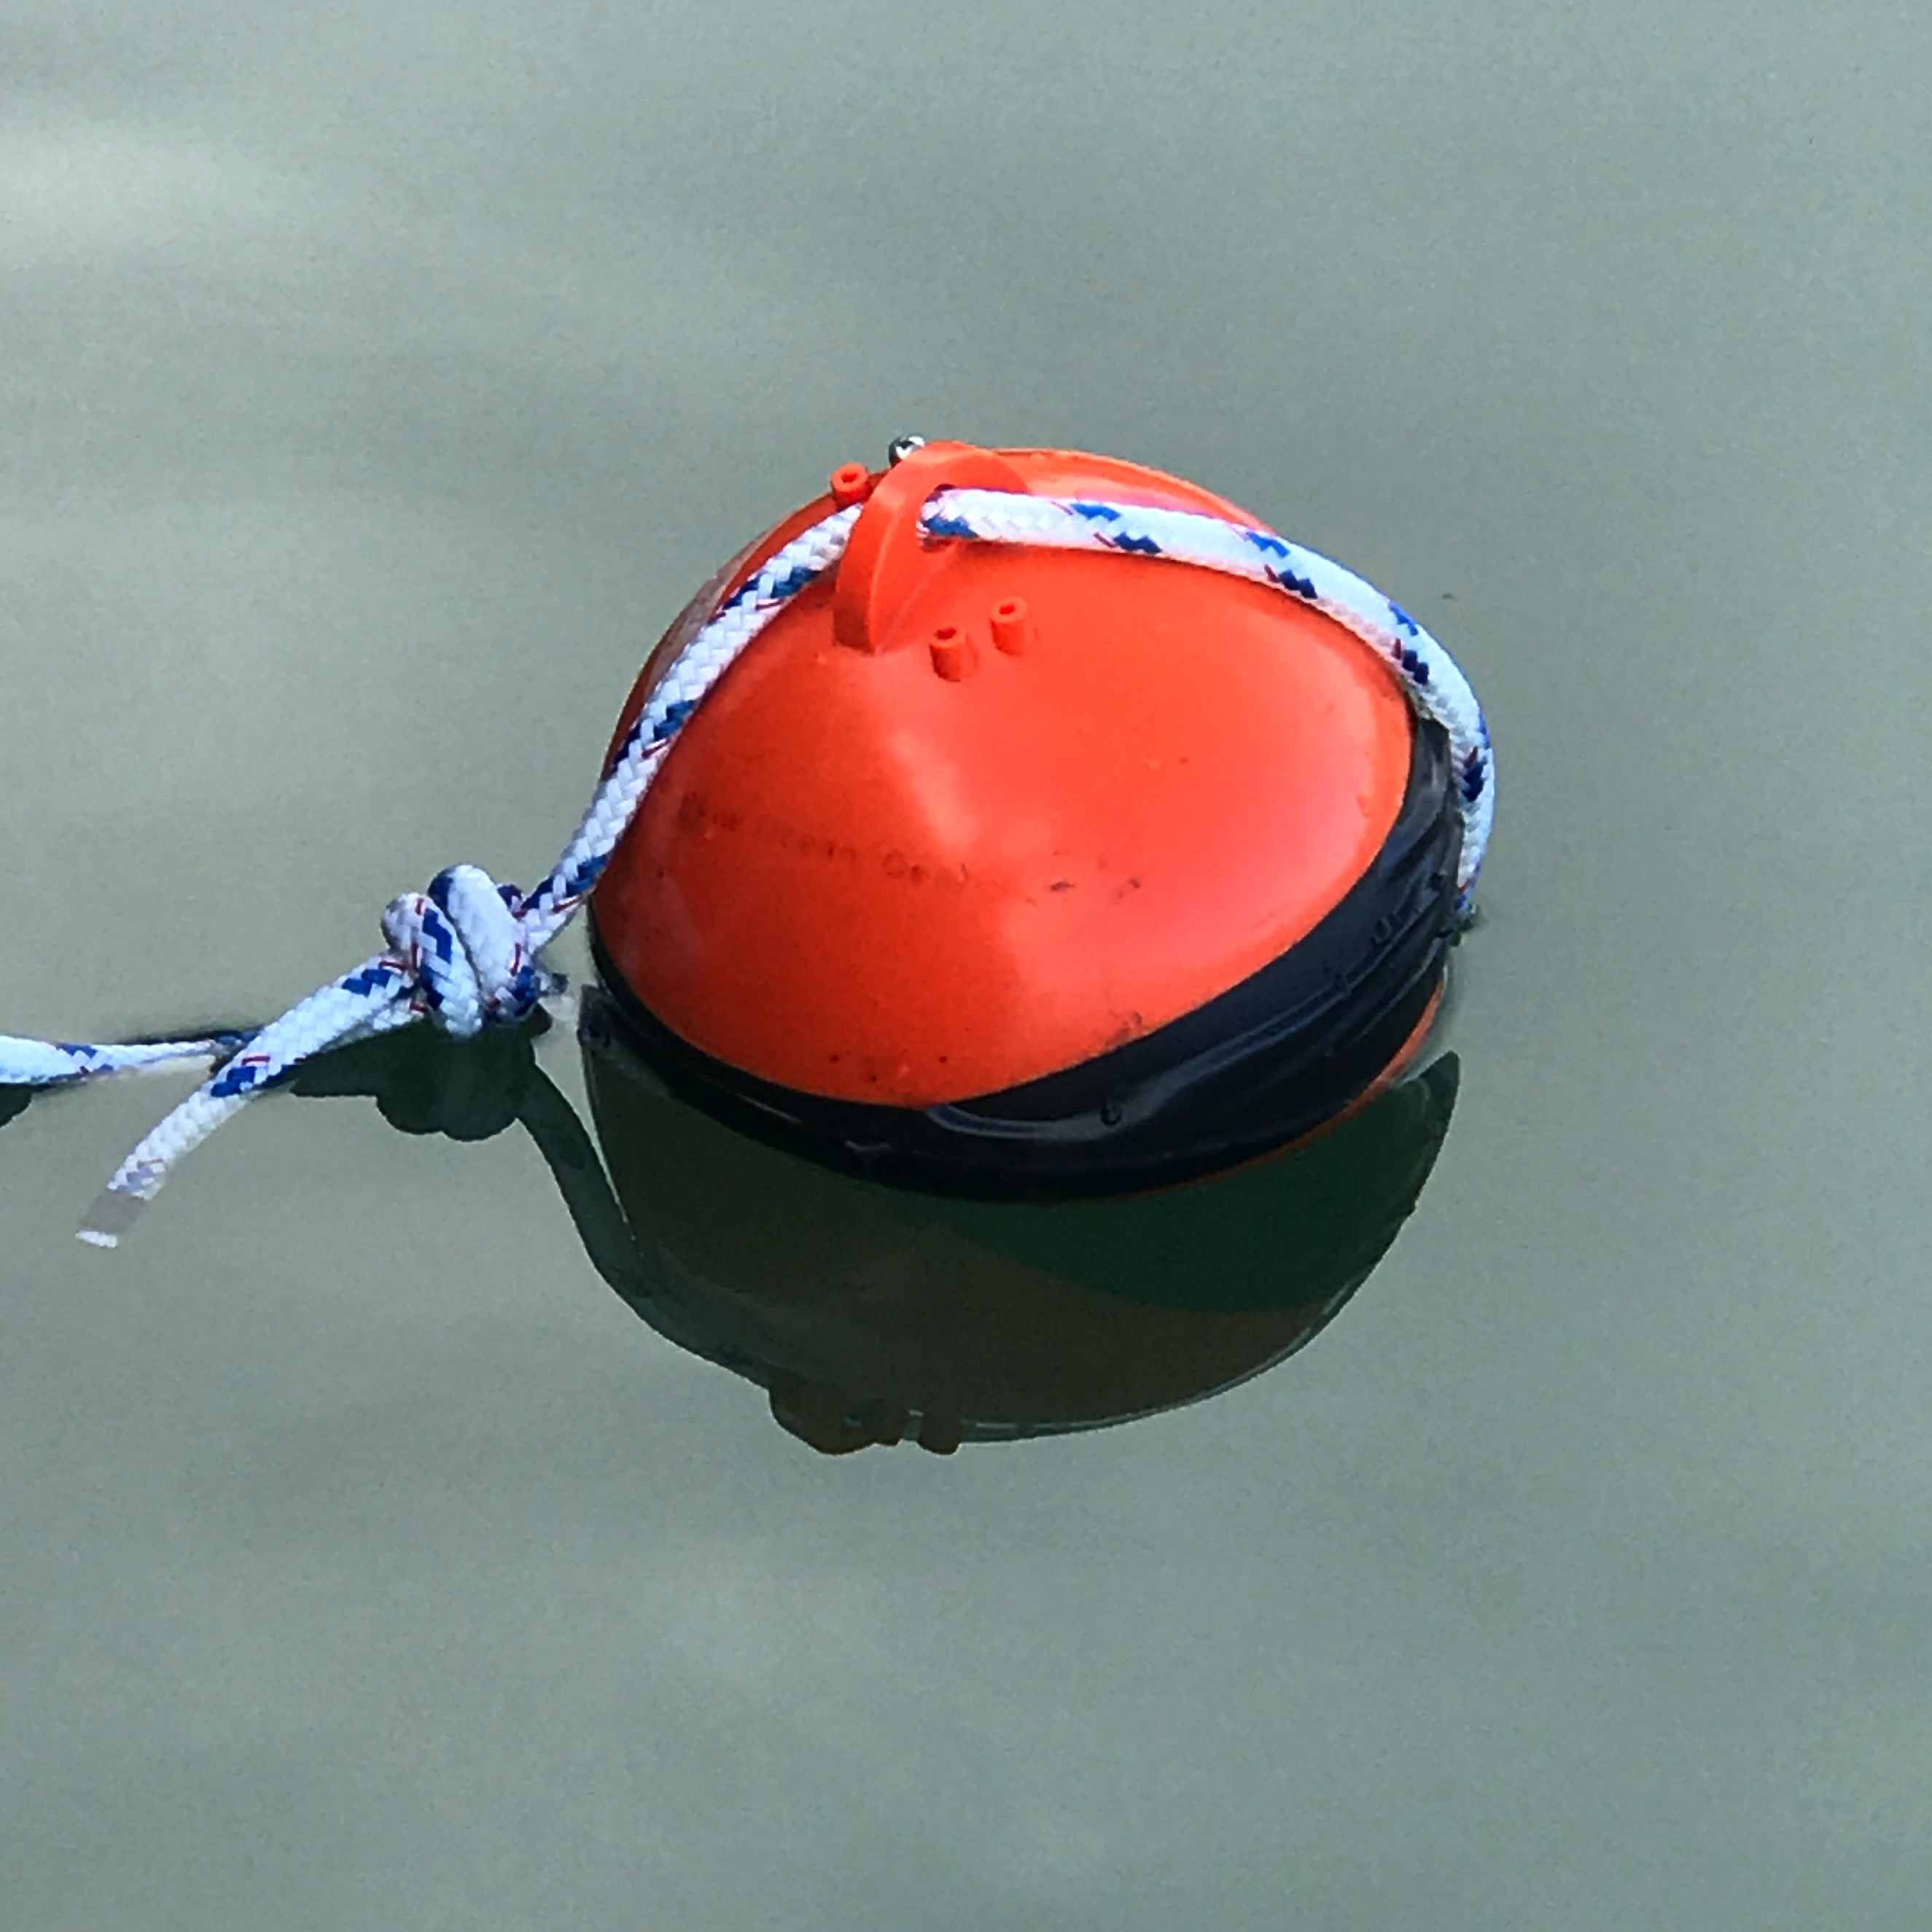 Orange Blue Ocean Gear Smart Buoy on calm water